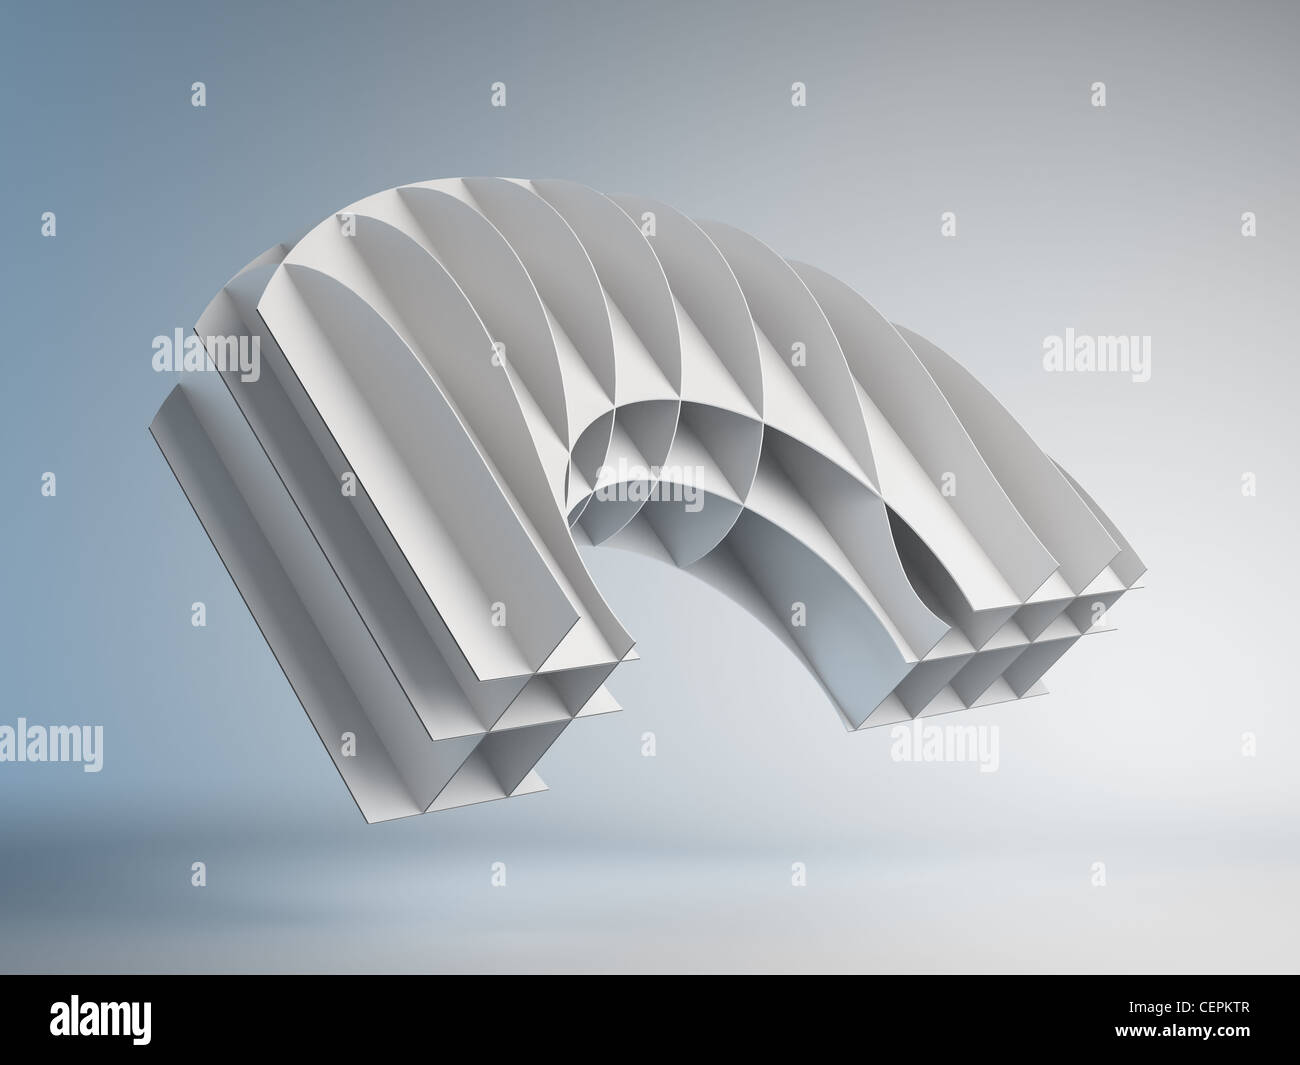 3D abstract maquette floating in mid-air Stock Photo